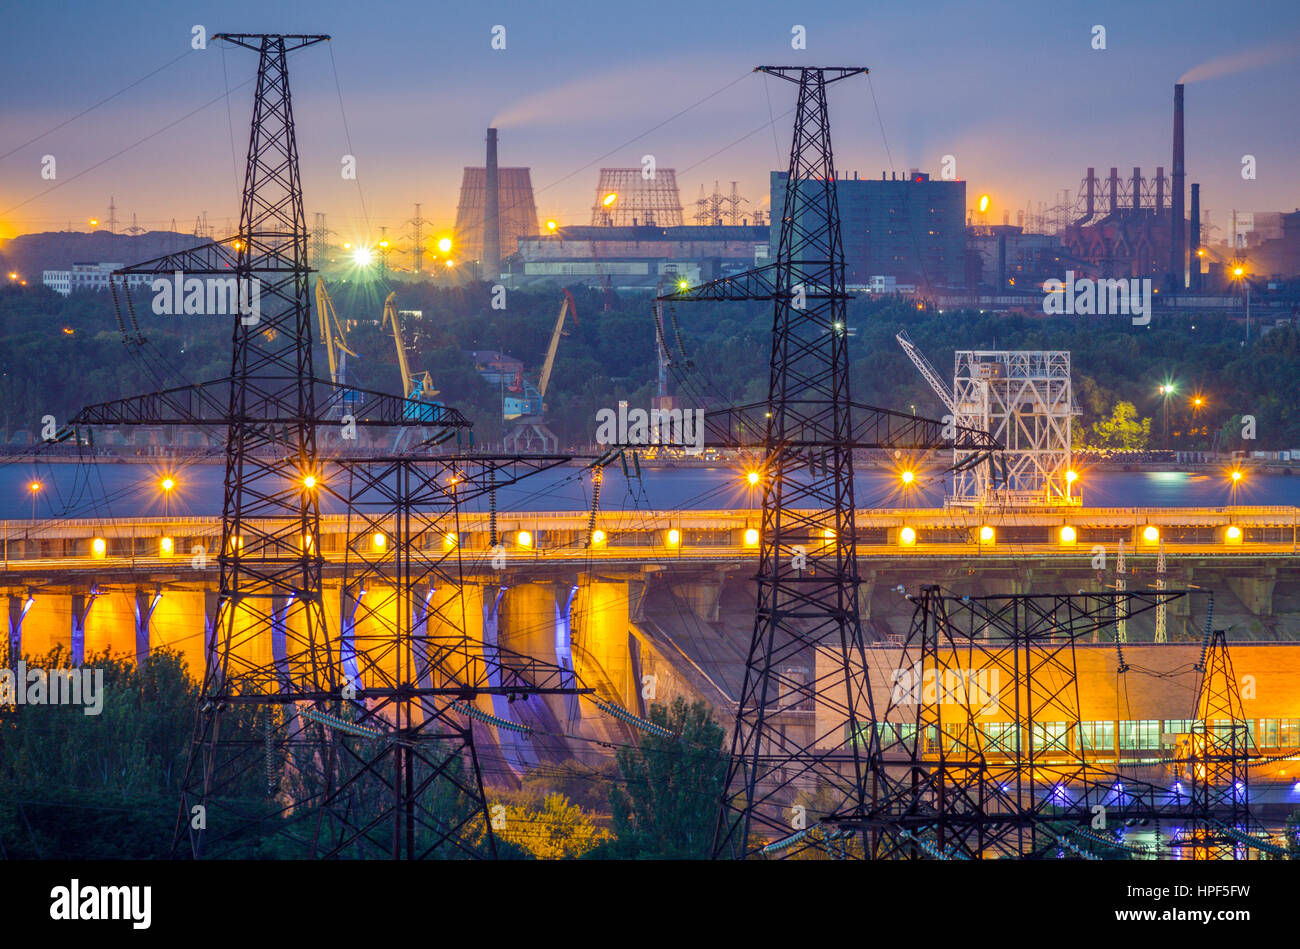 Industrial view with powerlines, Dneproges hydroelectric dam, cargo port and metallurgical plants in Zaporozhye, - Stock Image